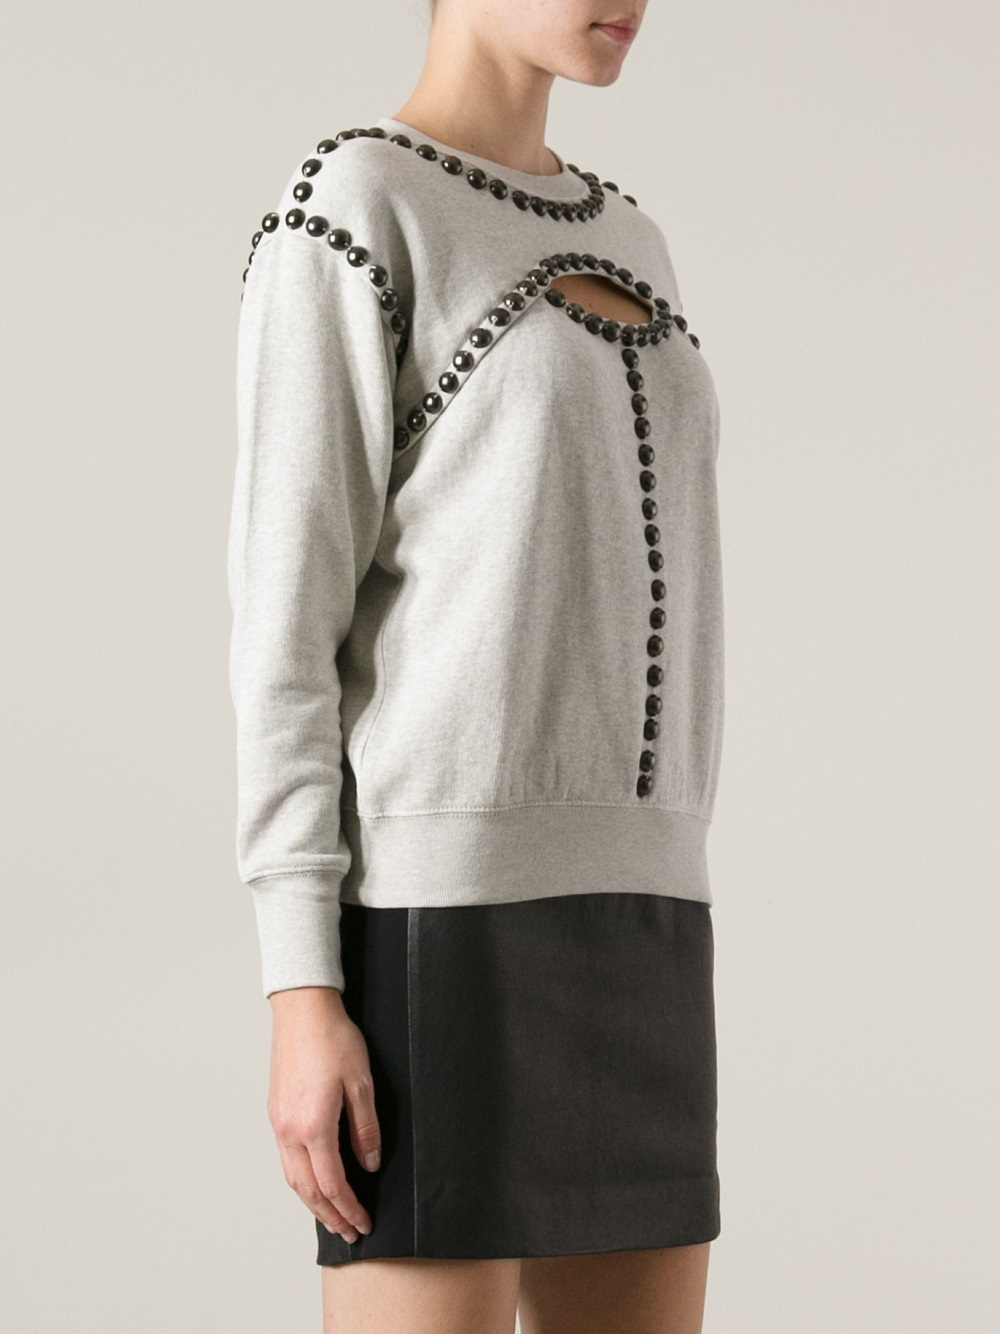 lyst isabel marant studded cut out jumper in gray. Black Bedroom Furniture Sets. Home Design Ideas